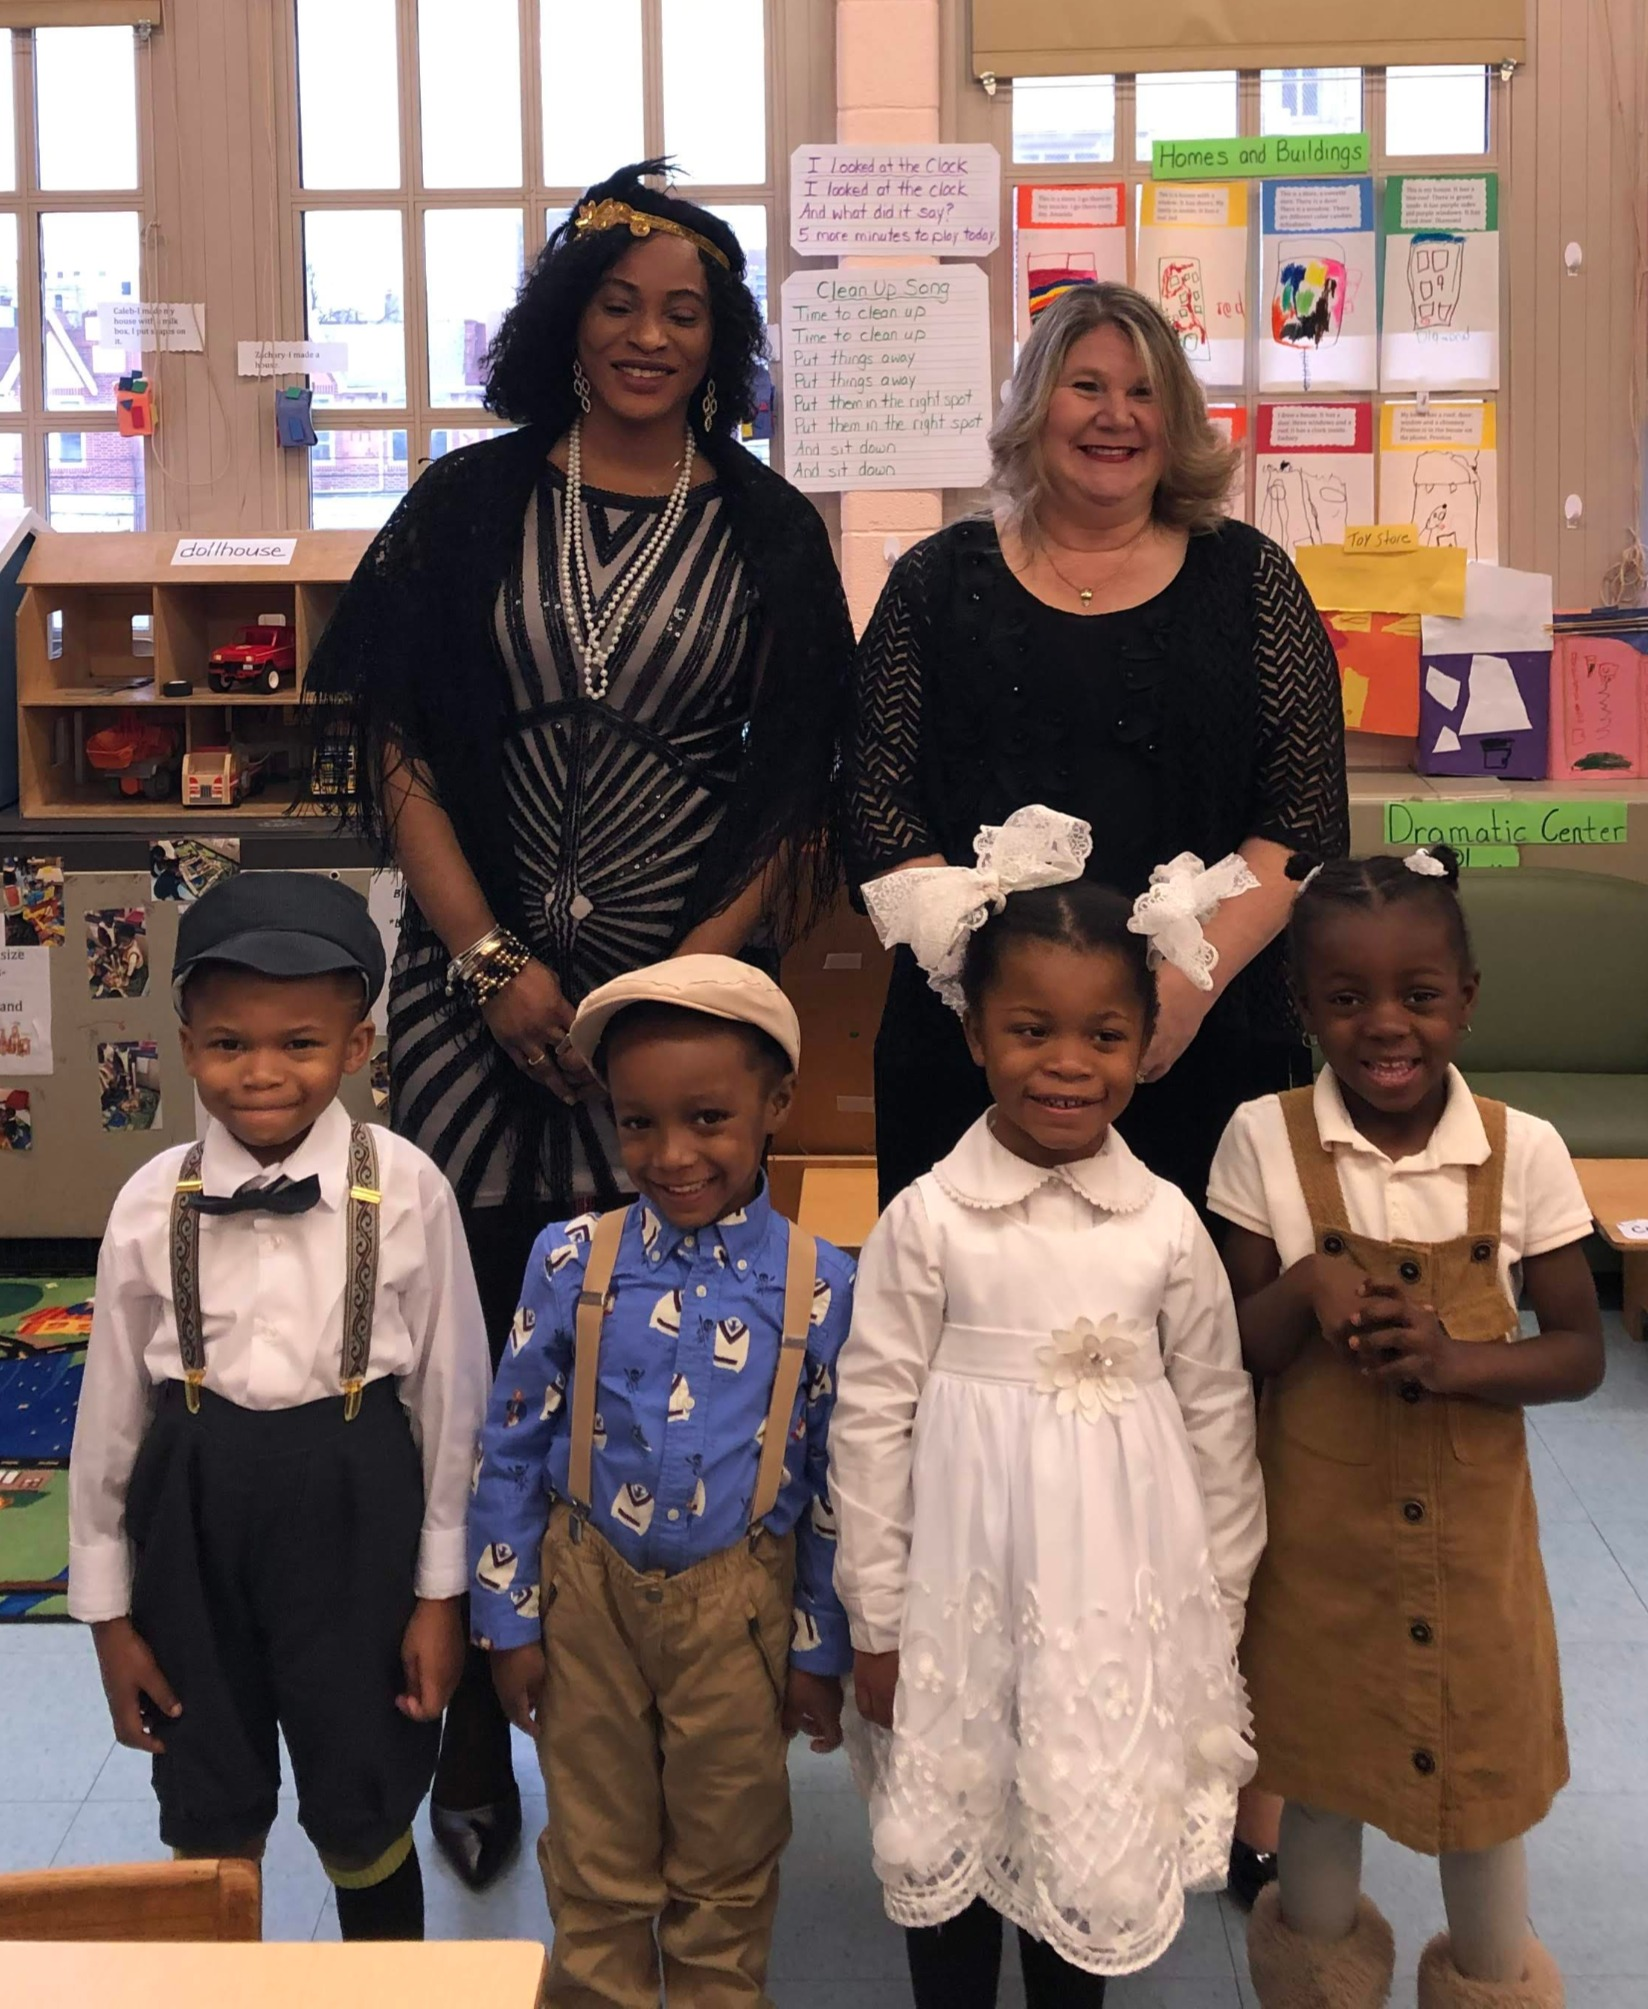 Ms. Williams and Ms. Davis with students in costumes